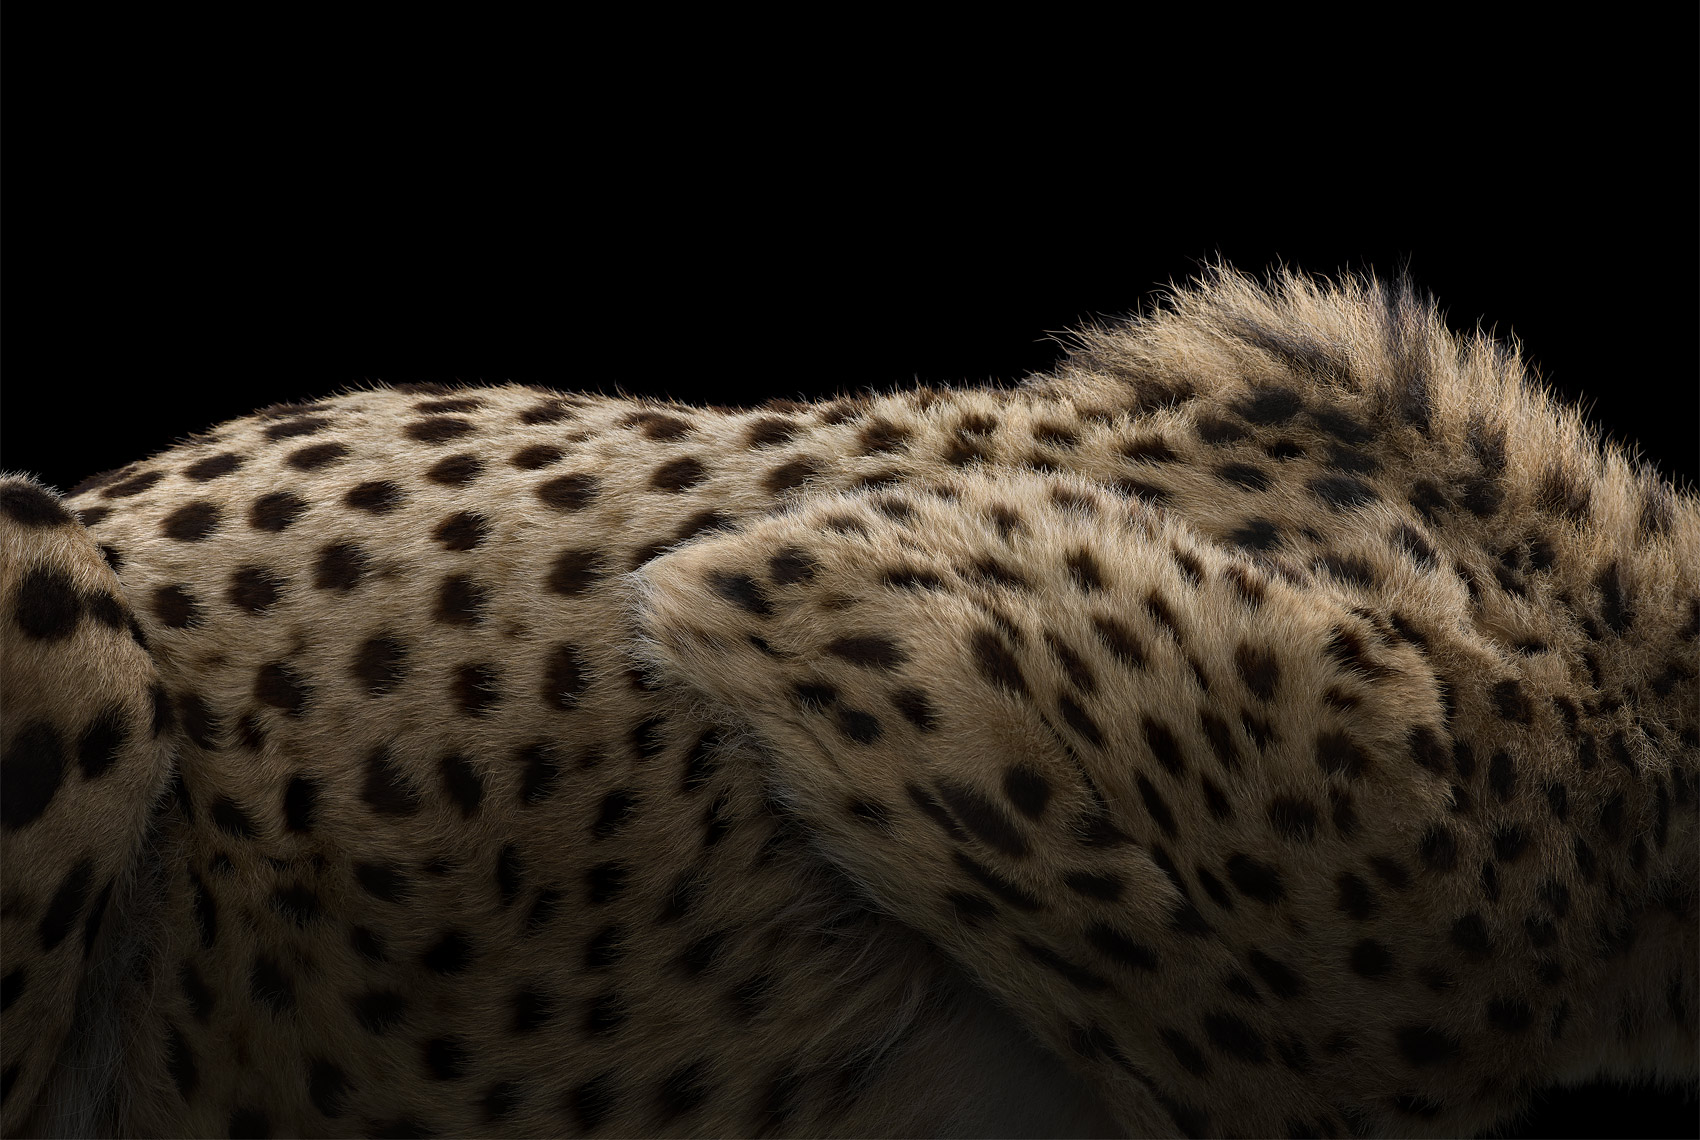 Cheetah fur by fine art animal photographer Brad Wilson